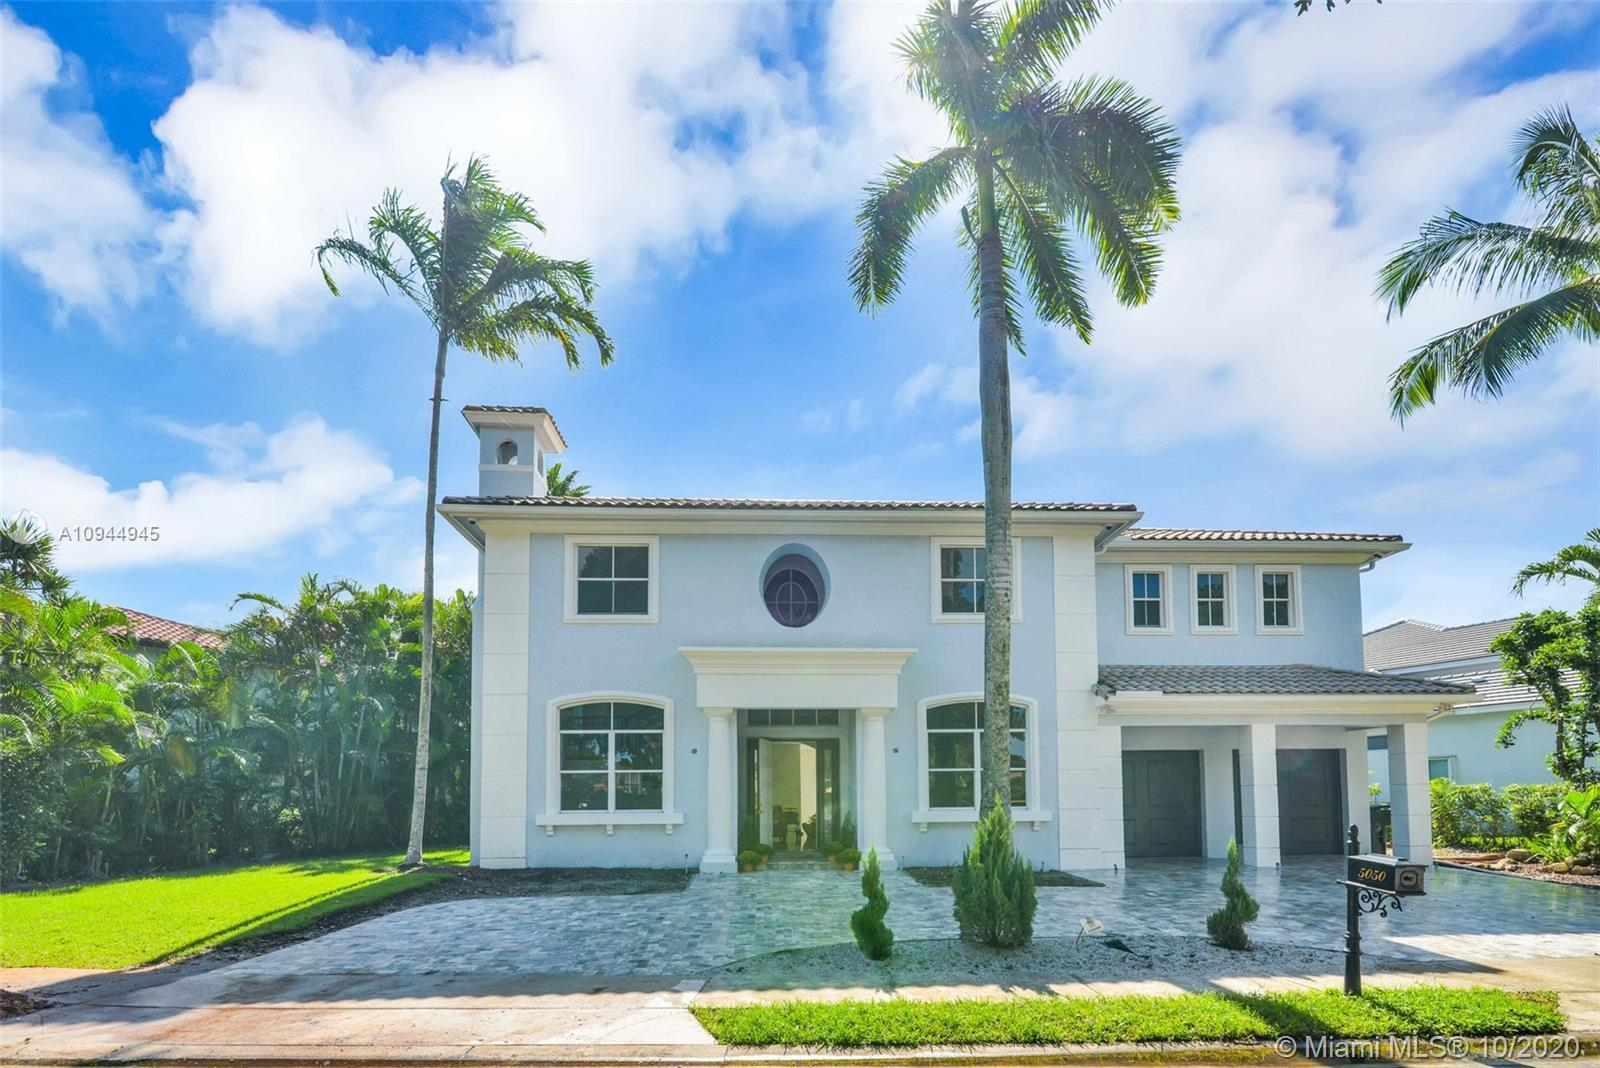 95% renovated 2 story single family home in East Boca Raton in a Gated Community with full time guar